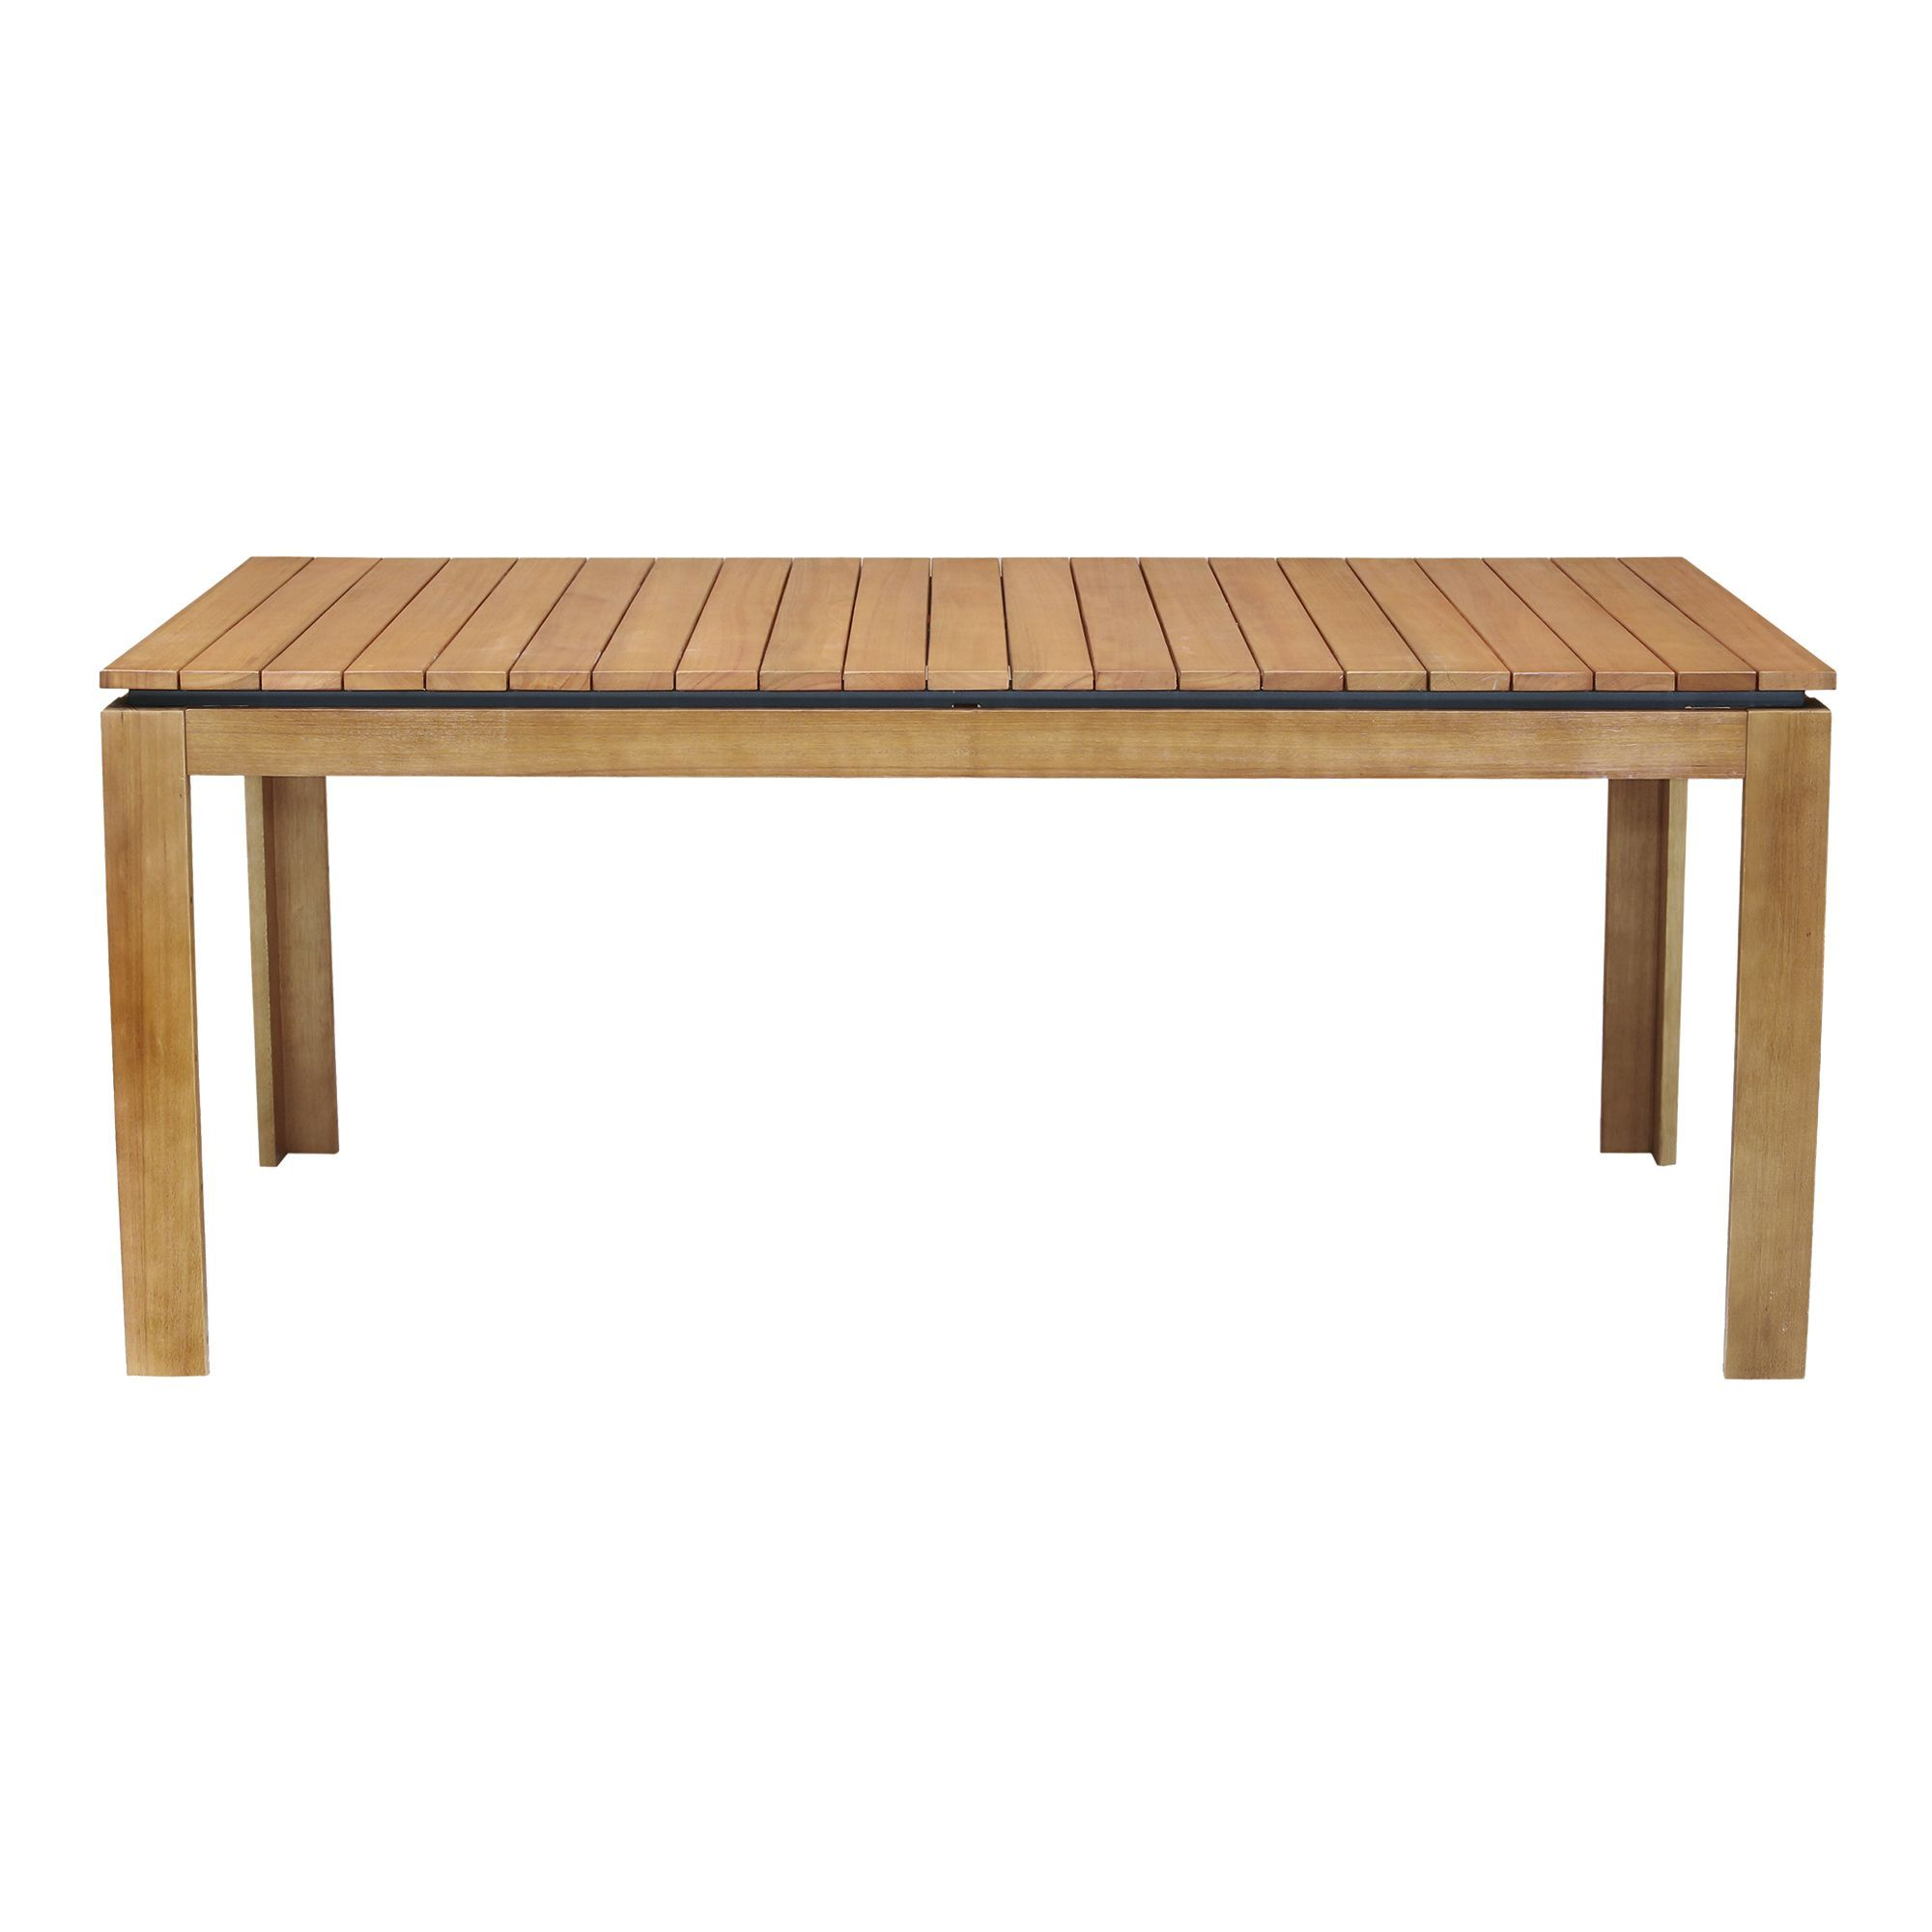 Alinea Table De Jardin 289 30 100 Table Rectangulaire Fixe Louane Tables De